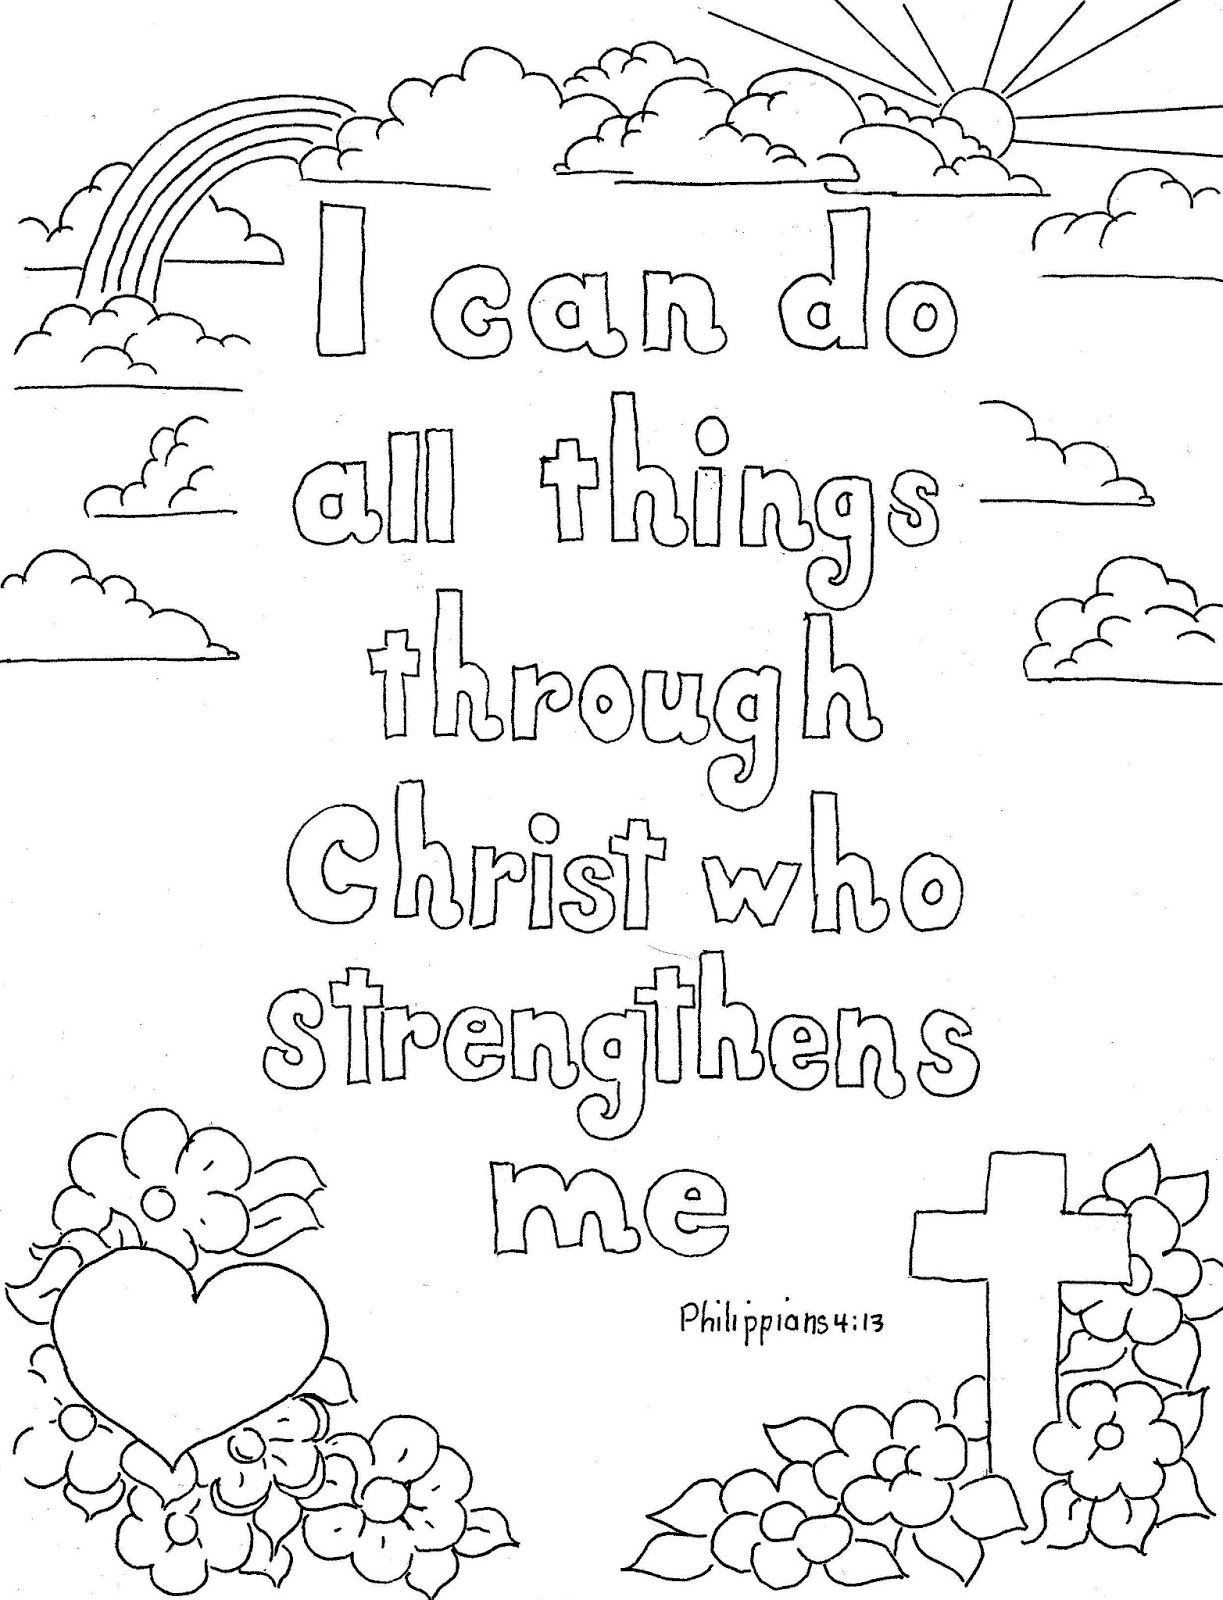 Coloring pages of spring things - Coloring Pages For Kids Great Biblical Truth To Share With Our Sponsored Children